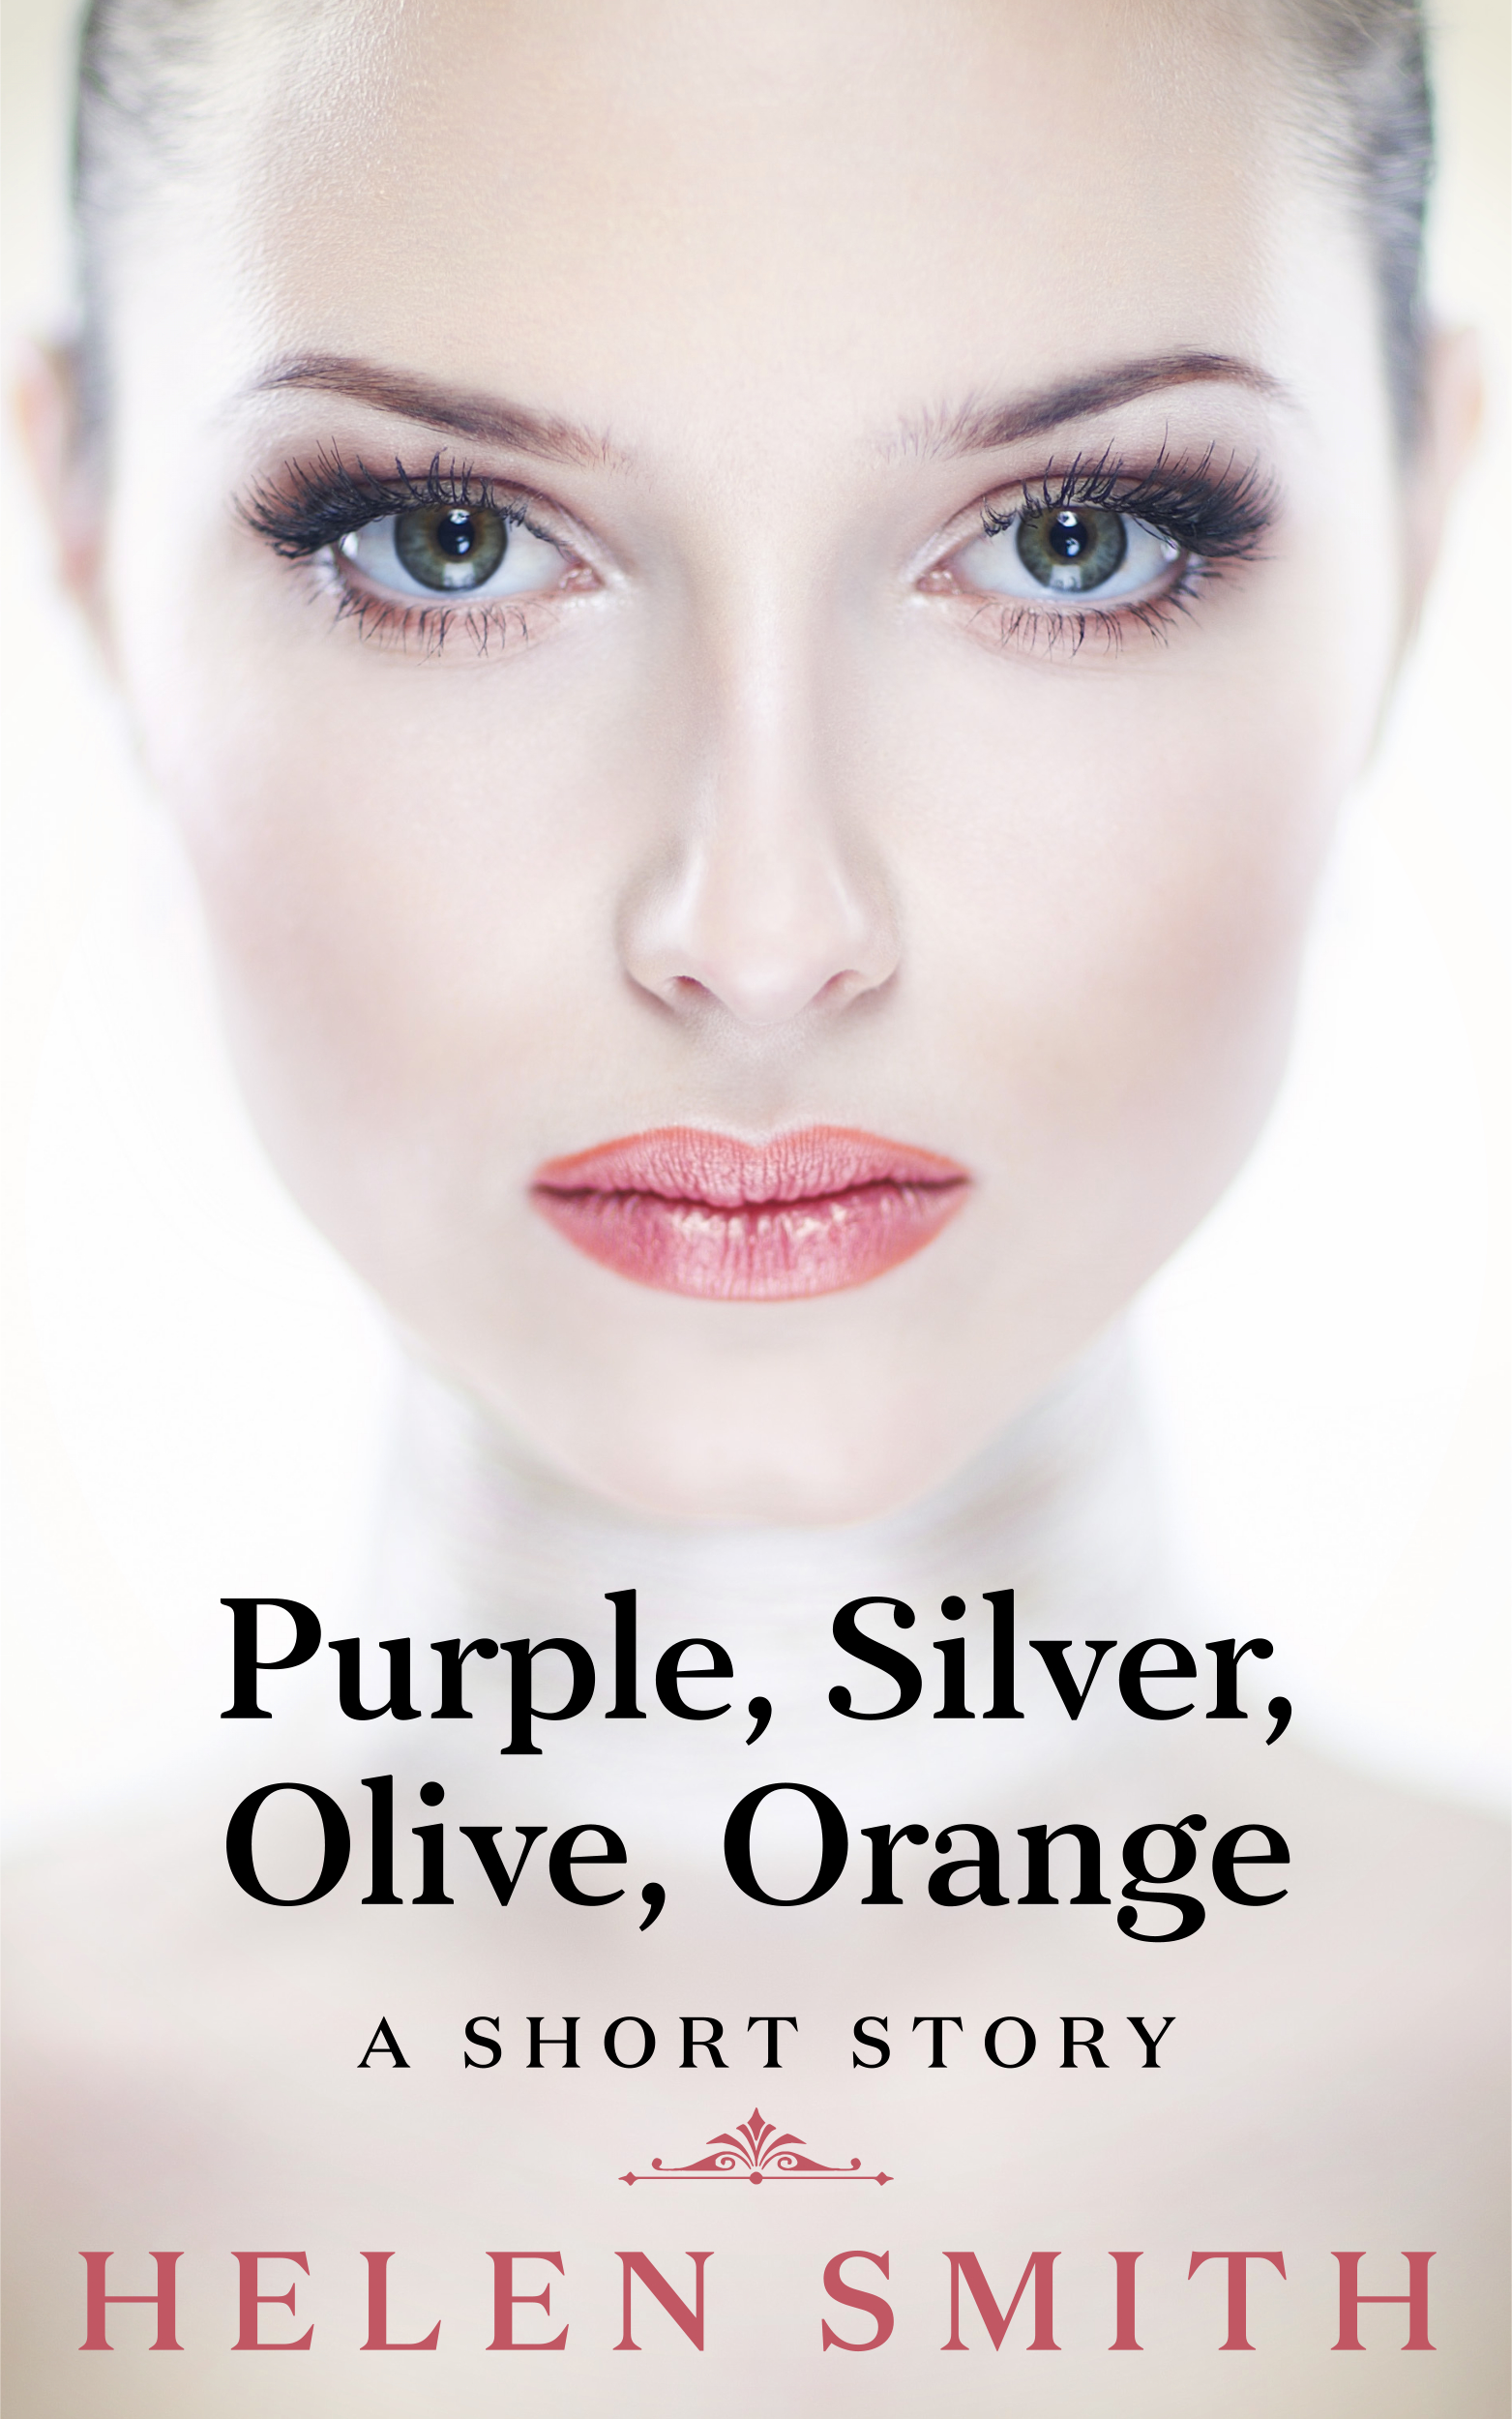 Purple, SIlver, Olive, Orange by Helen Smith